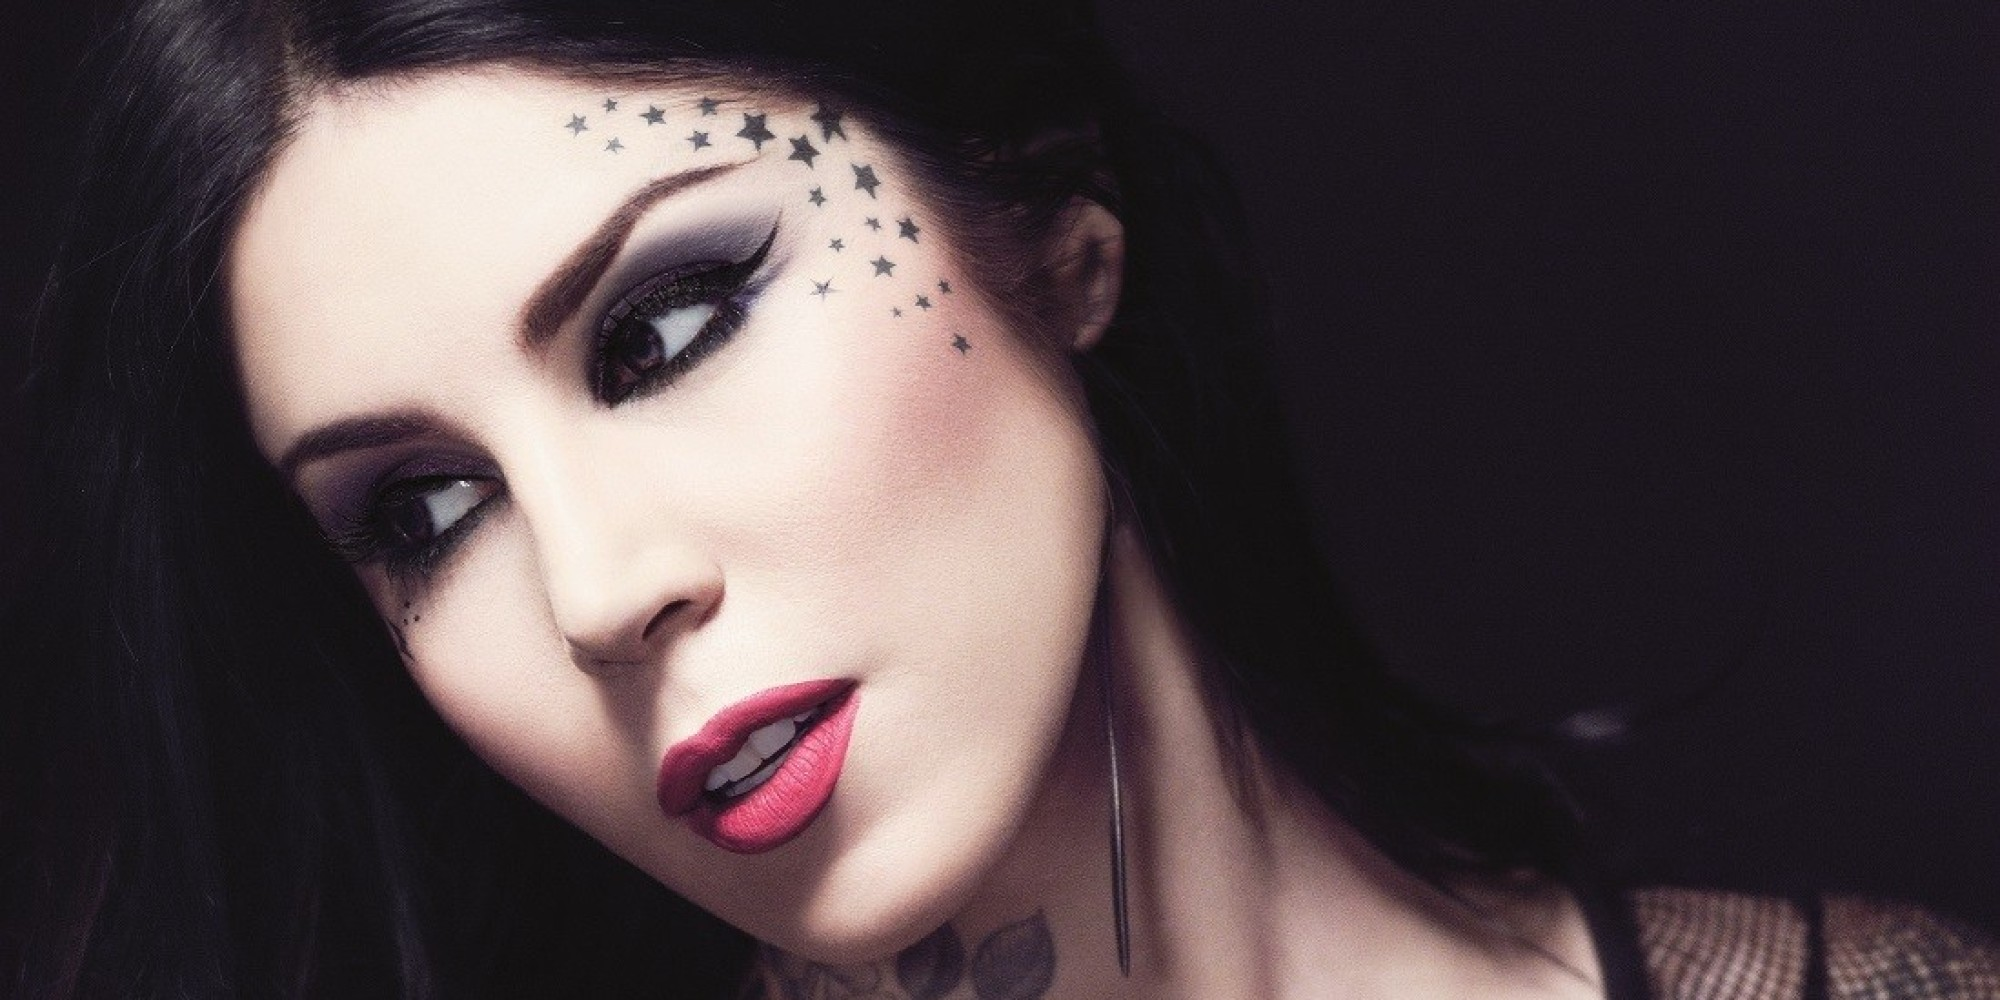 Kat Von D Doesn't Give...